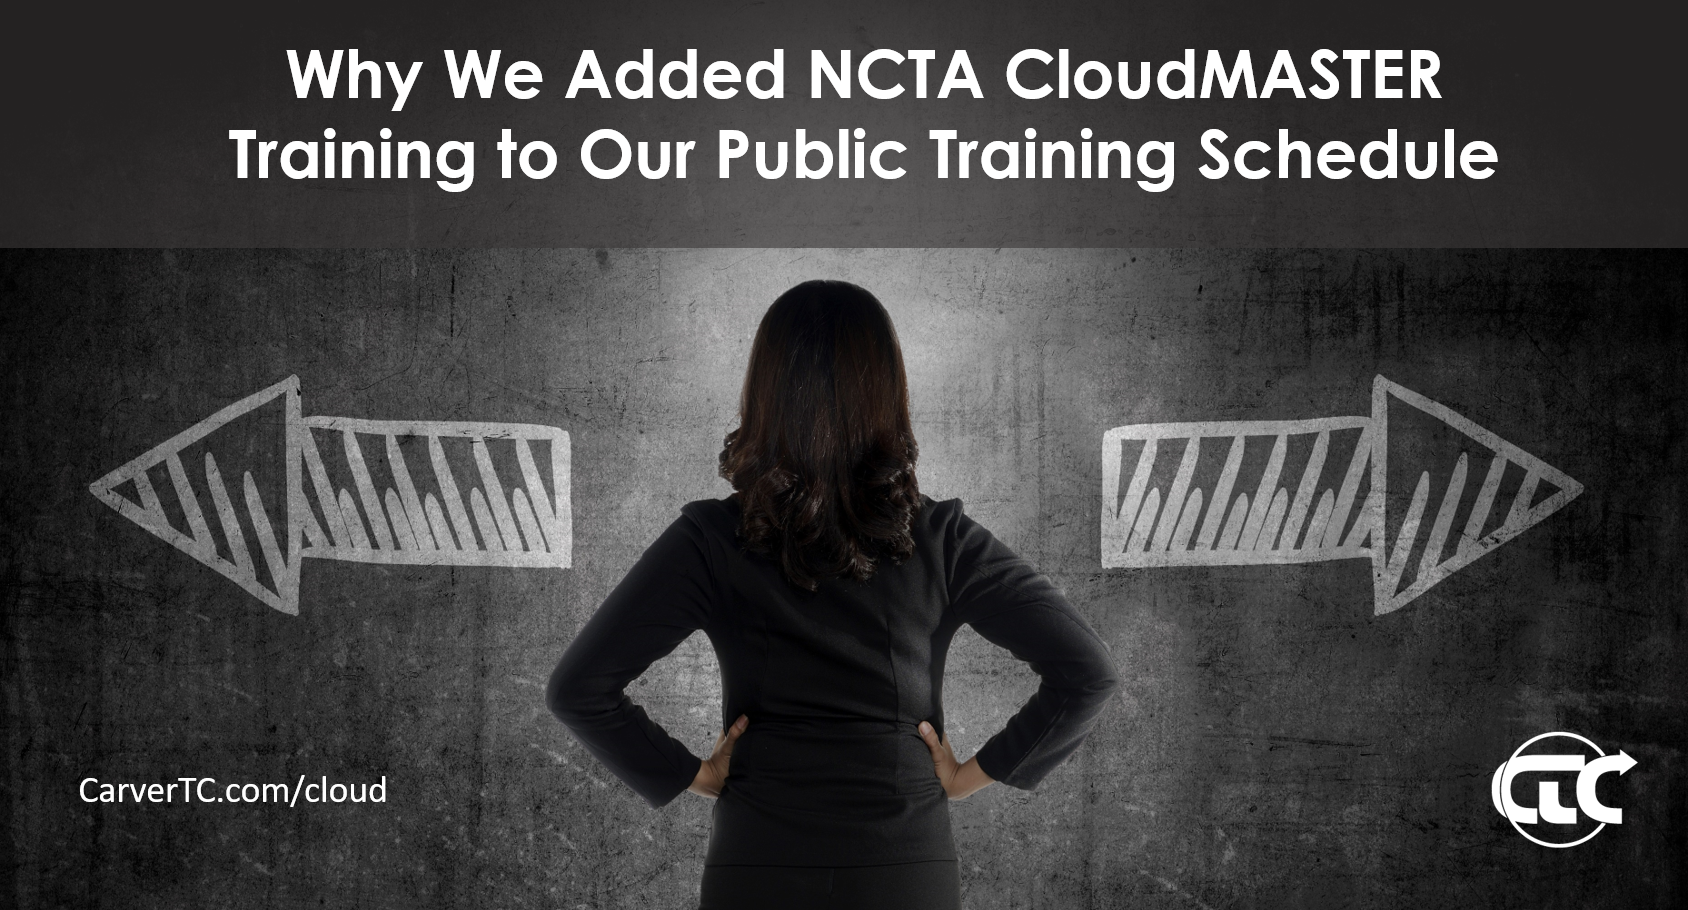 Why20We20Added20NCTA20CloudMASTER20Training20to20Our20Public20Training20Schedule-WIDE.png